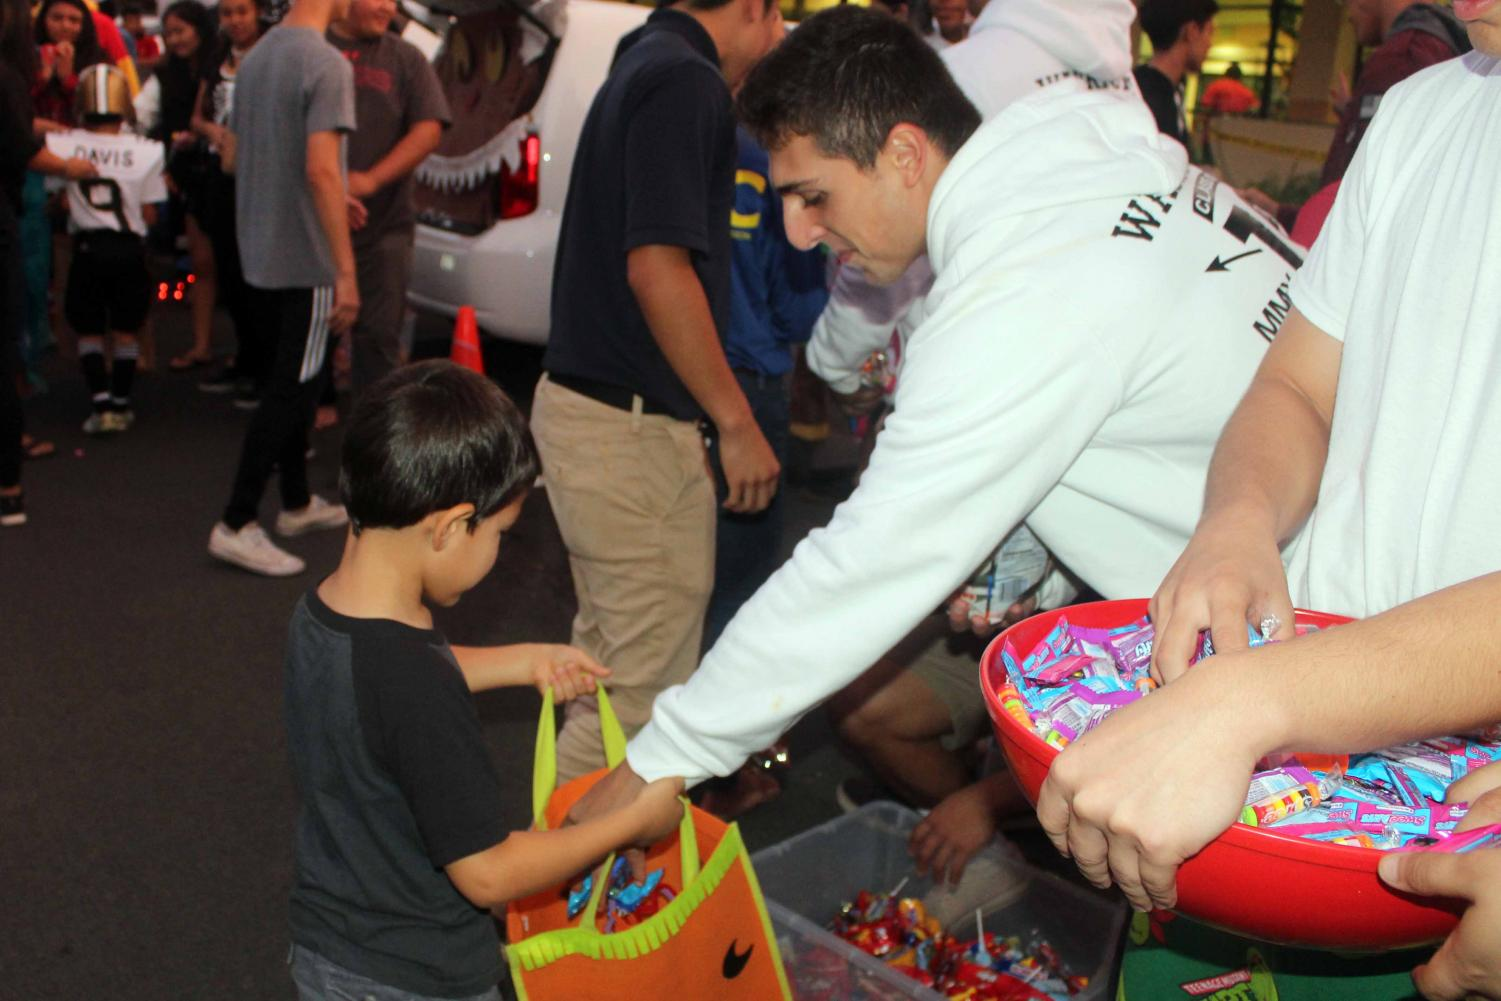 Senior Daniel Kapua gives out candy on behalf of the Letterman's Club. Kula haʻahaʻa returned for a second year of Trunk or Treat at the upper elementary school parking lot, Friday, Oct. 27.